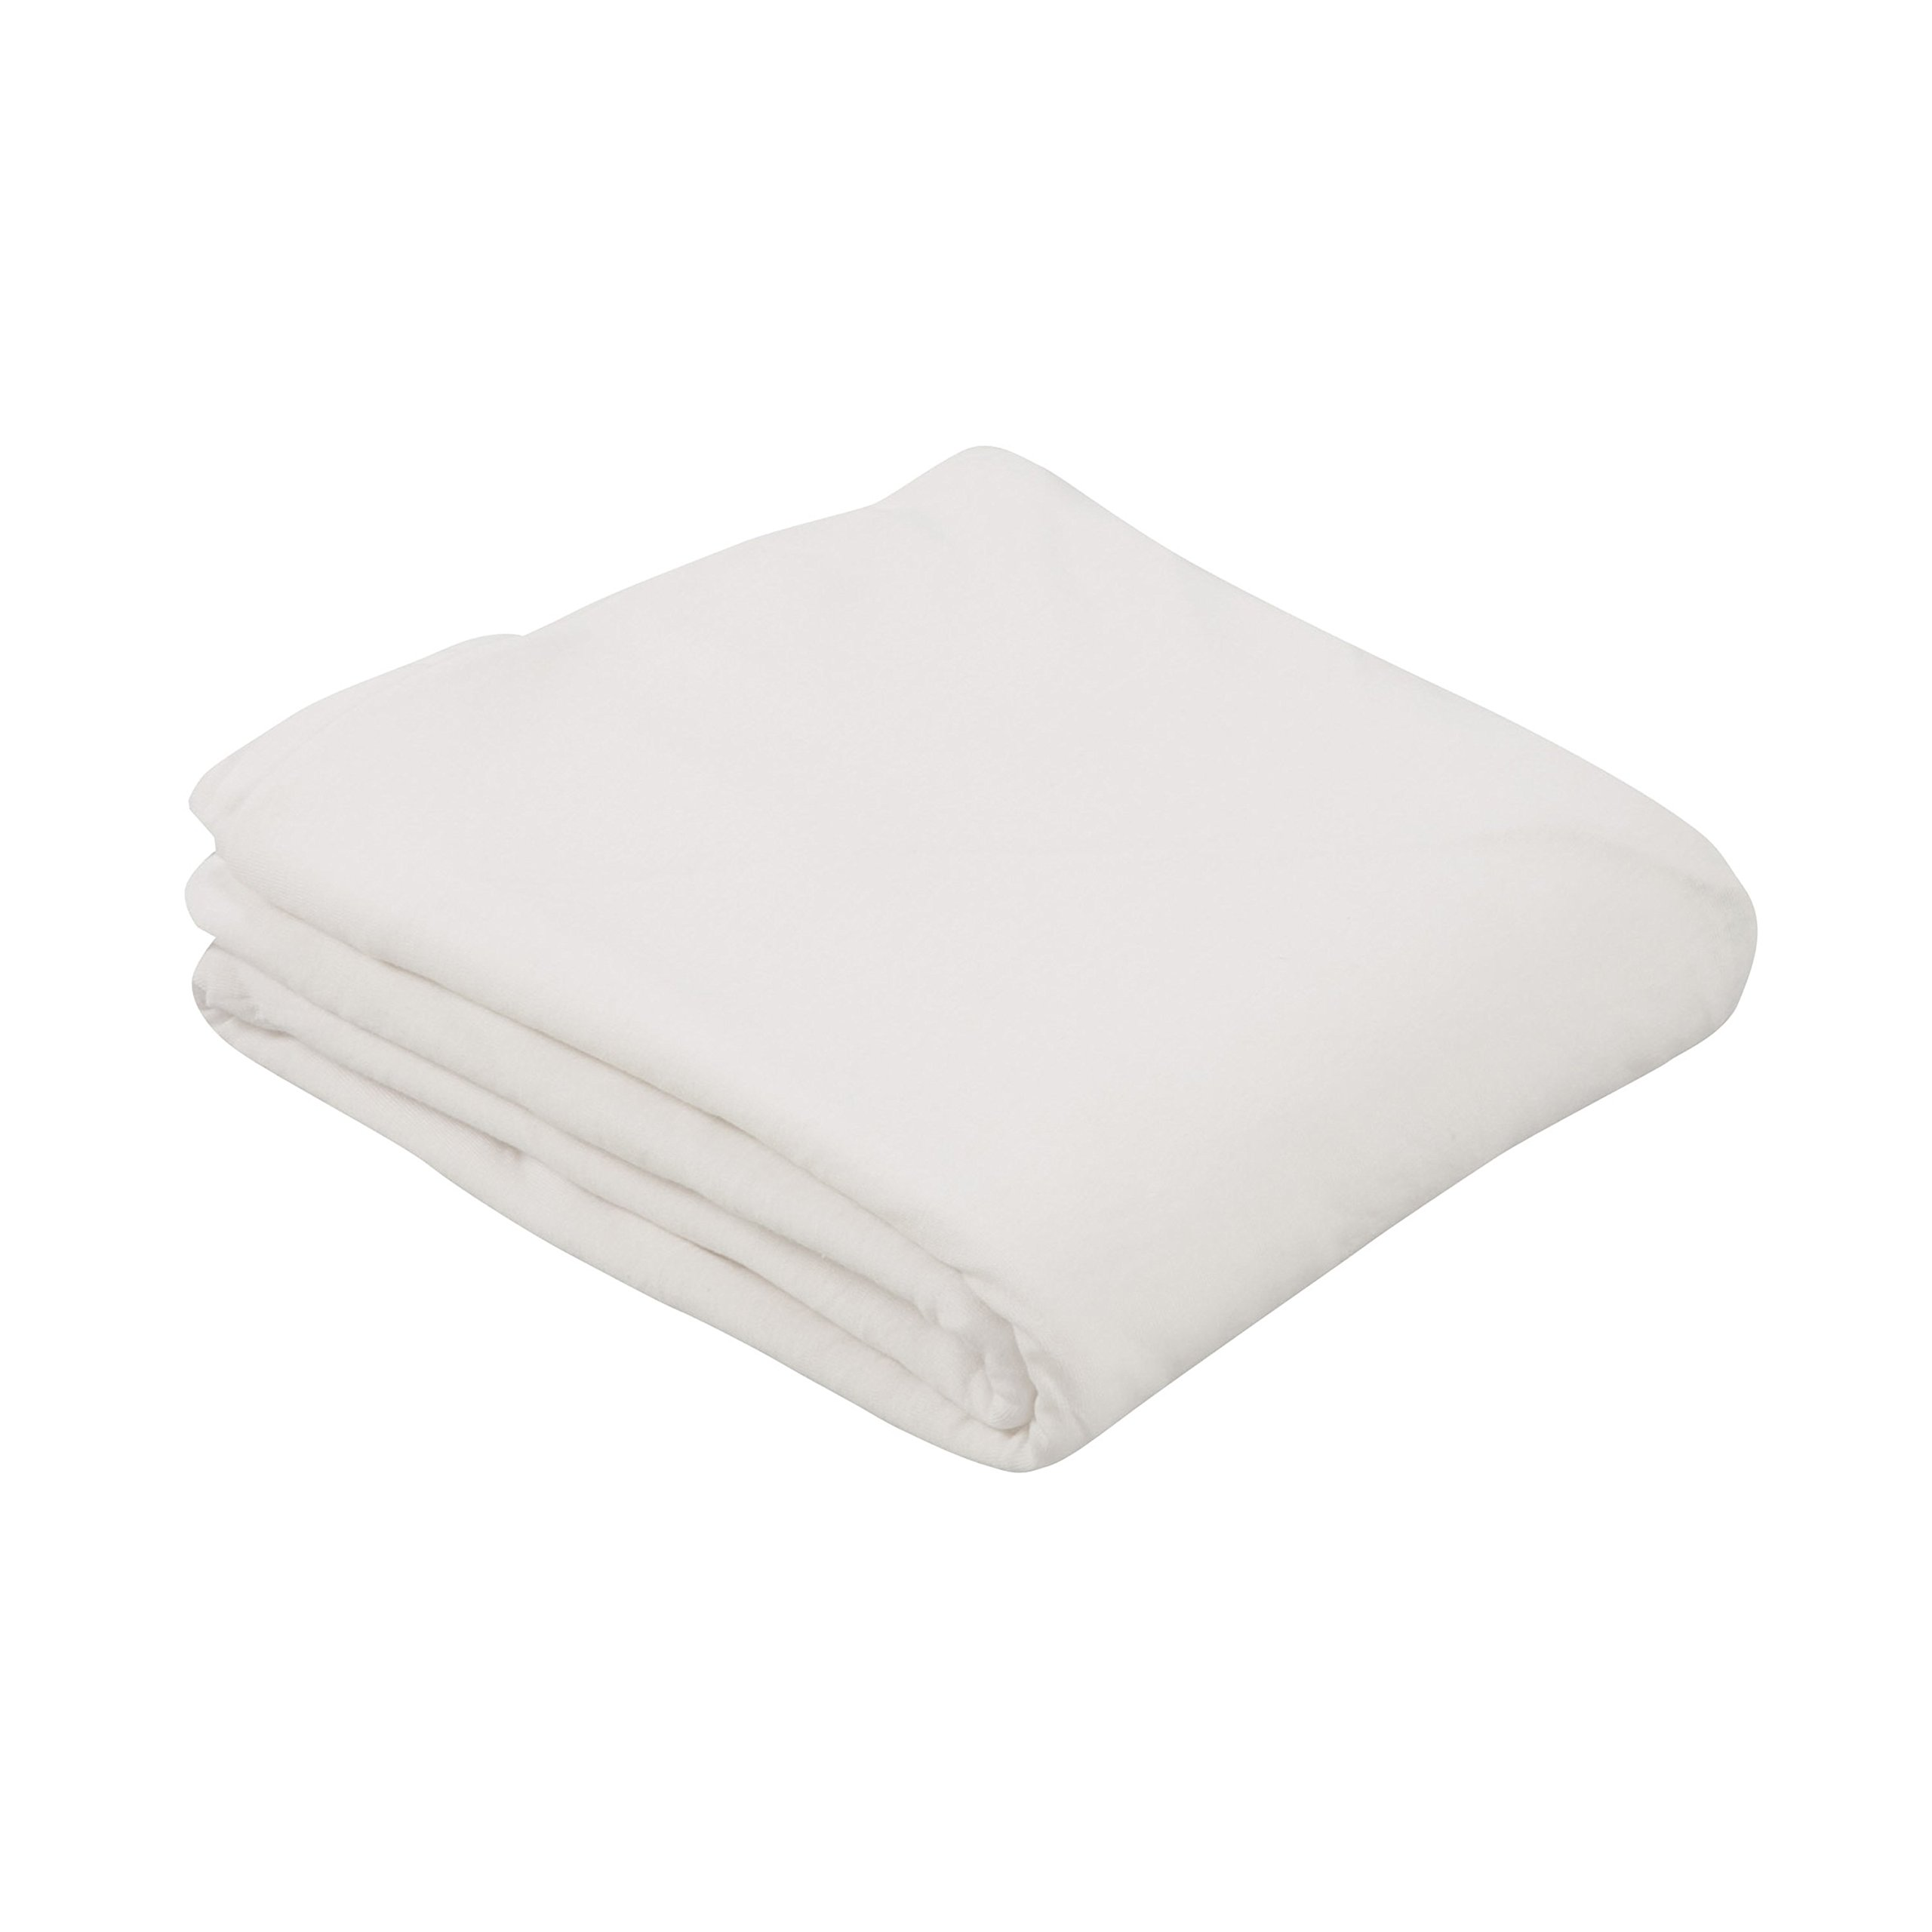 Duro-Med DMI Airweave Knit Hospital Bed Sheet, Polyester/Cotton, Promotes Better Air Circulation, 36 x 80 x 6 Inches, White